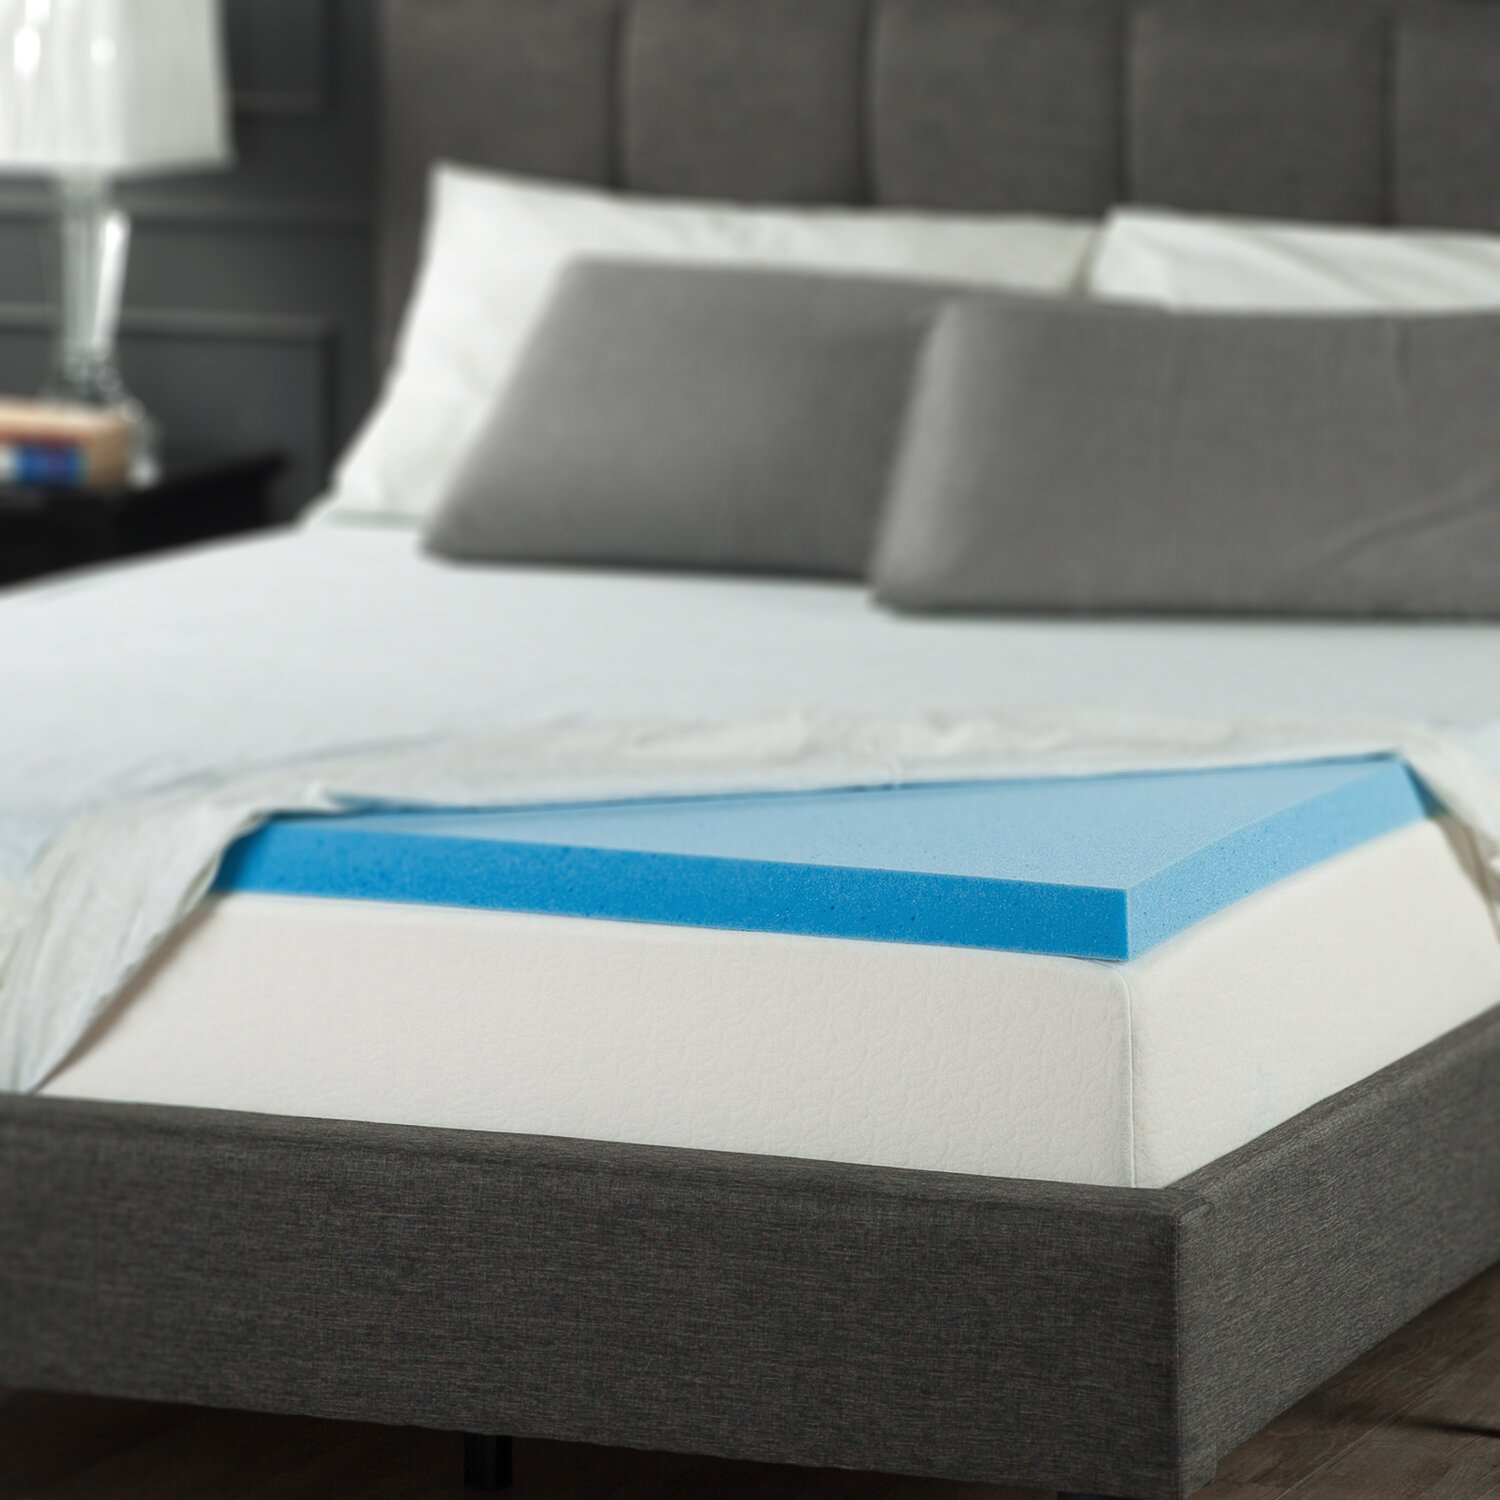 2 Gel Memory Foam Mattress Topper Reviews Joss Main